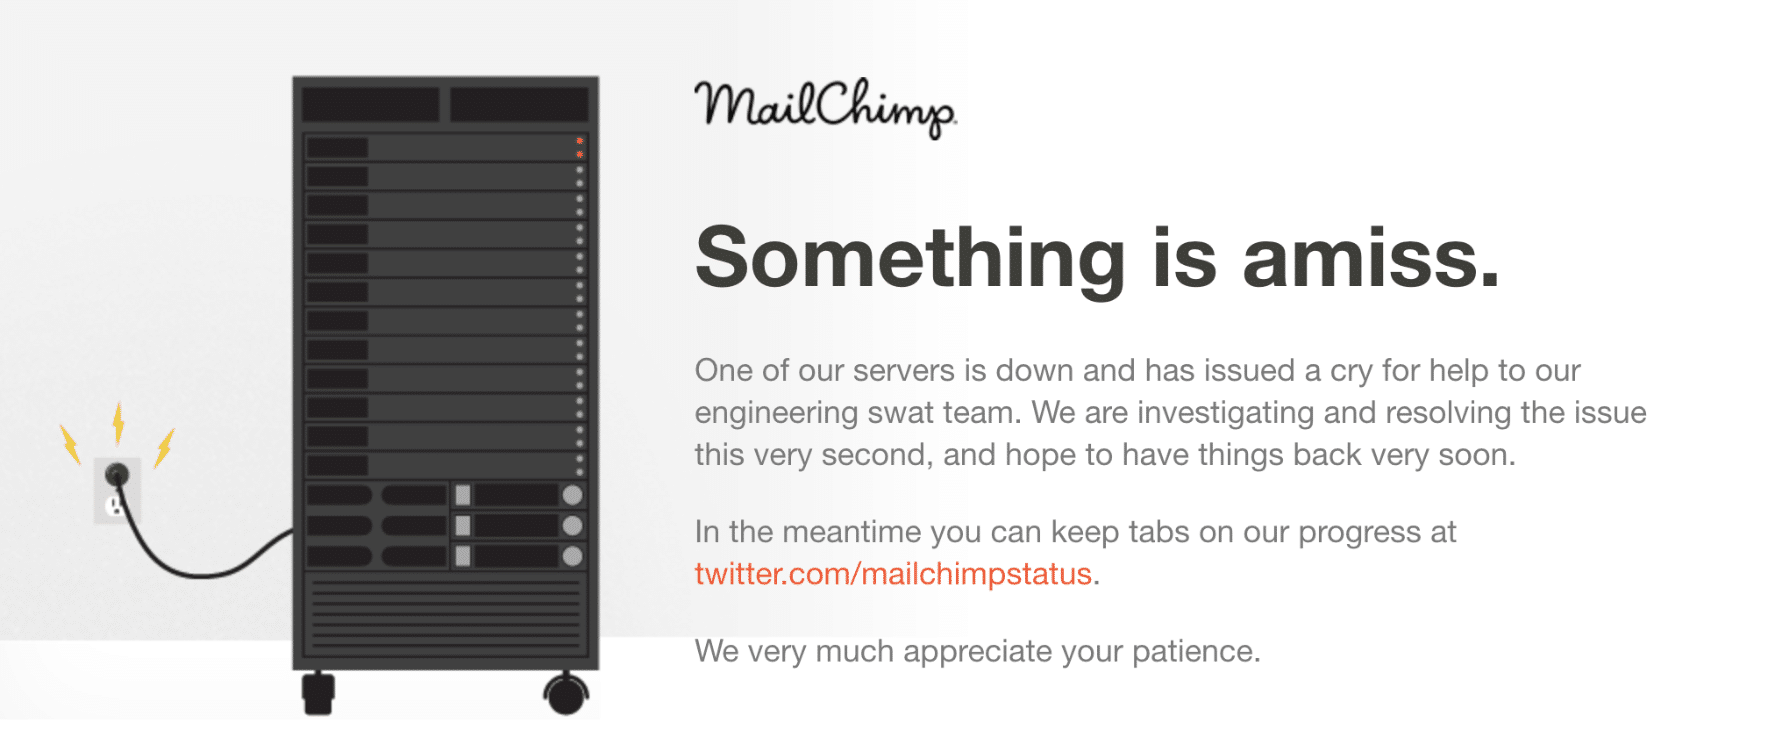 Downtime example from MailChimp